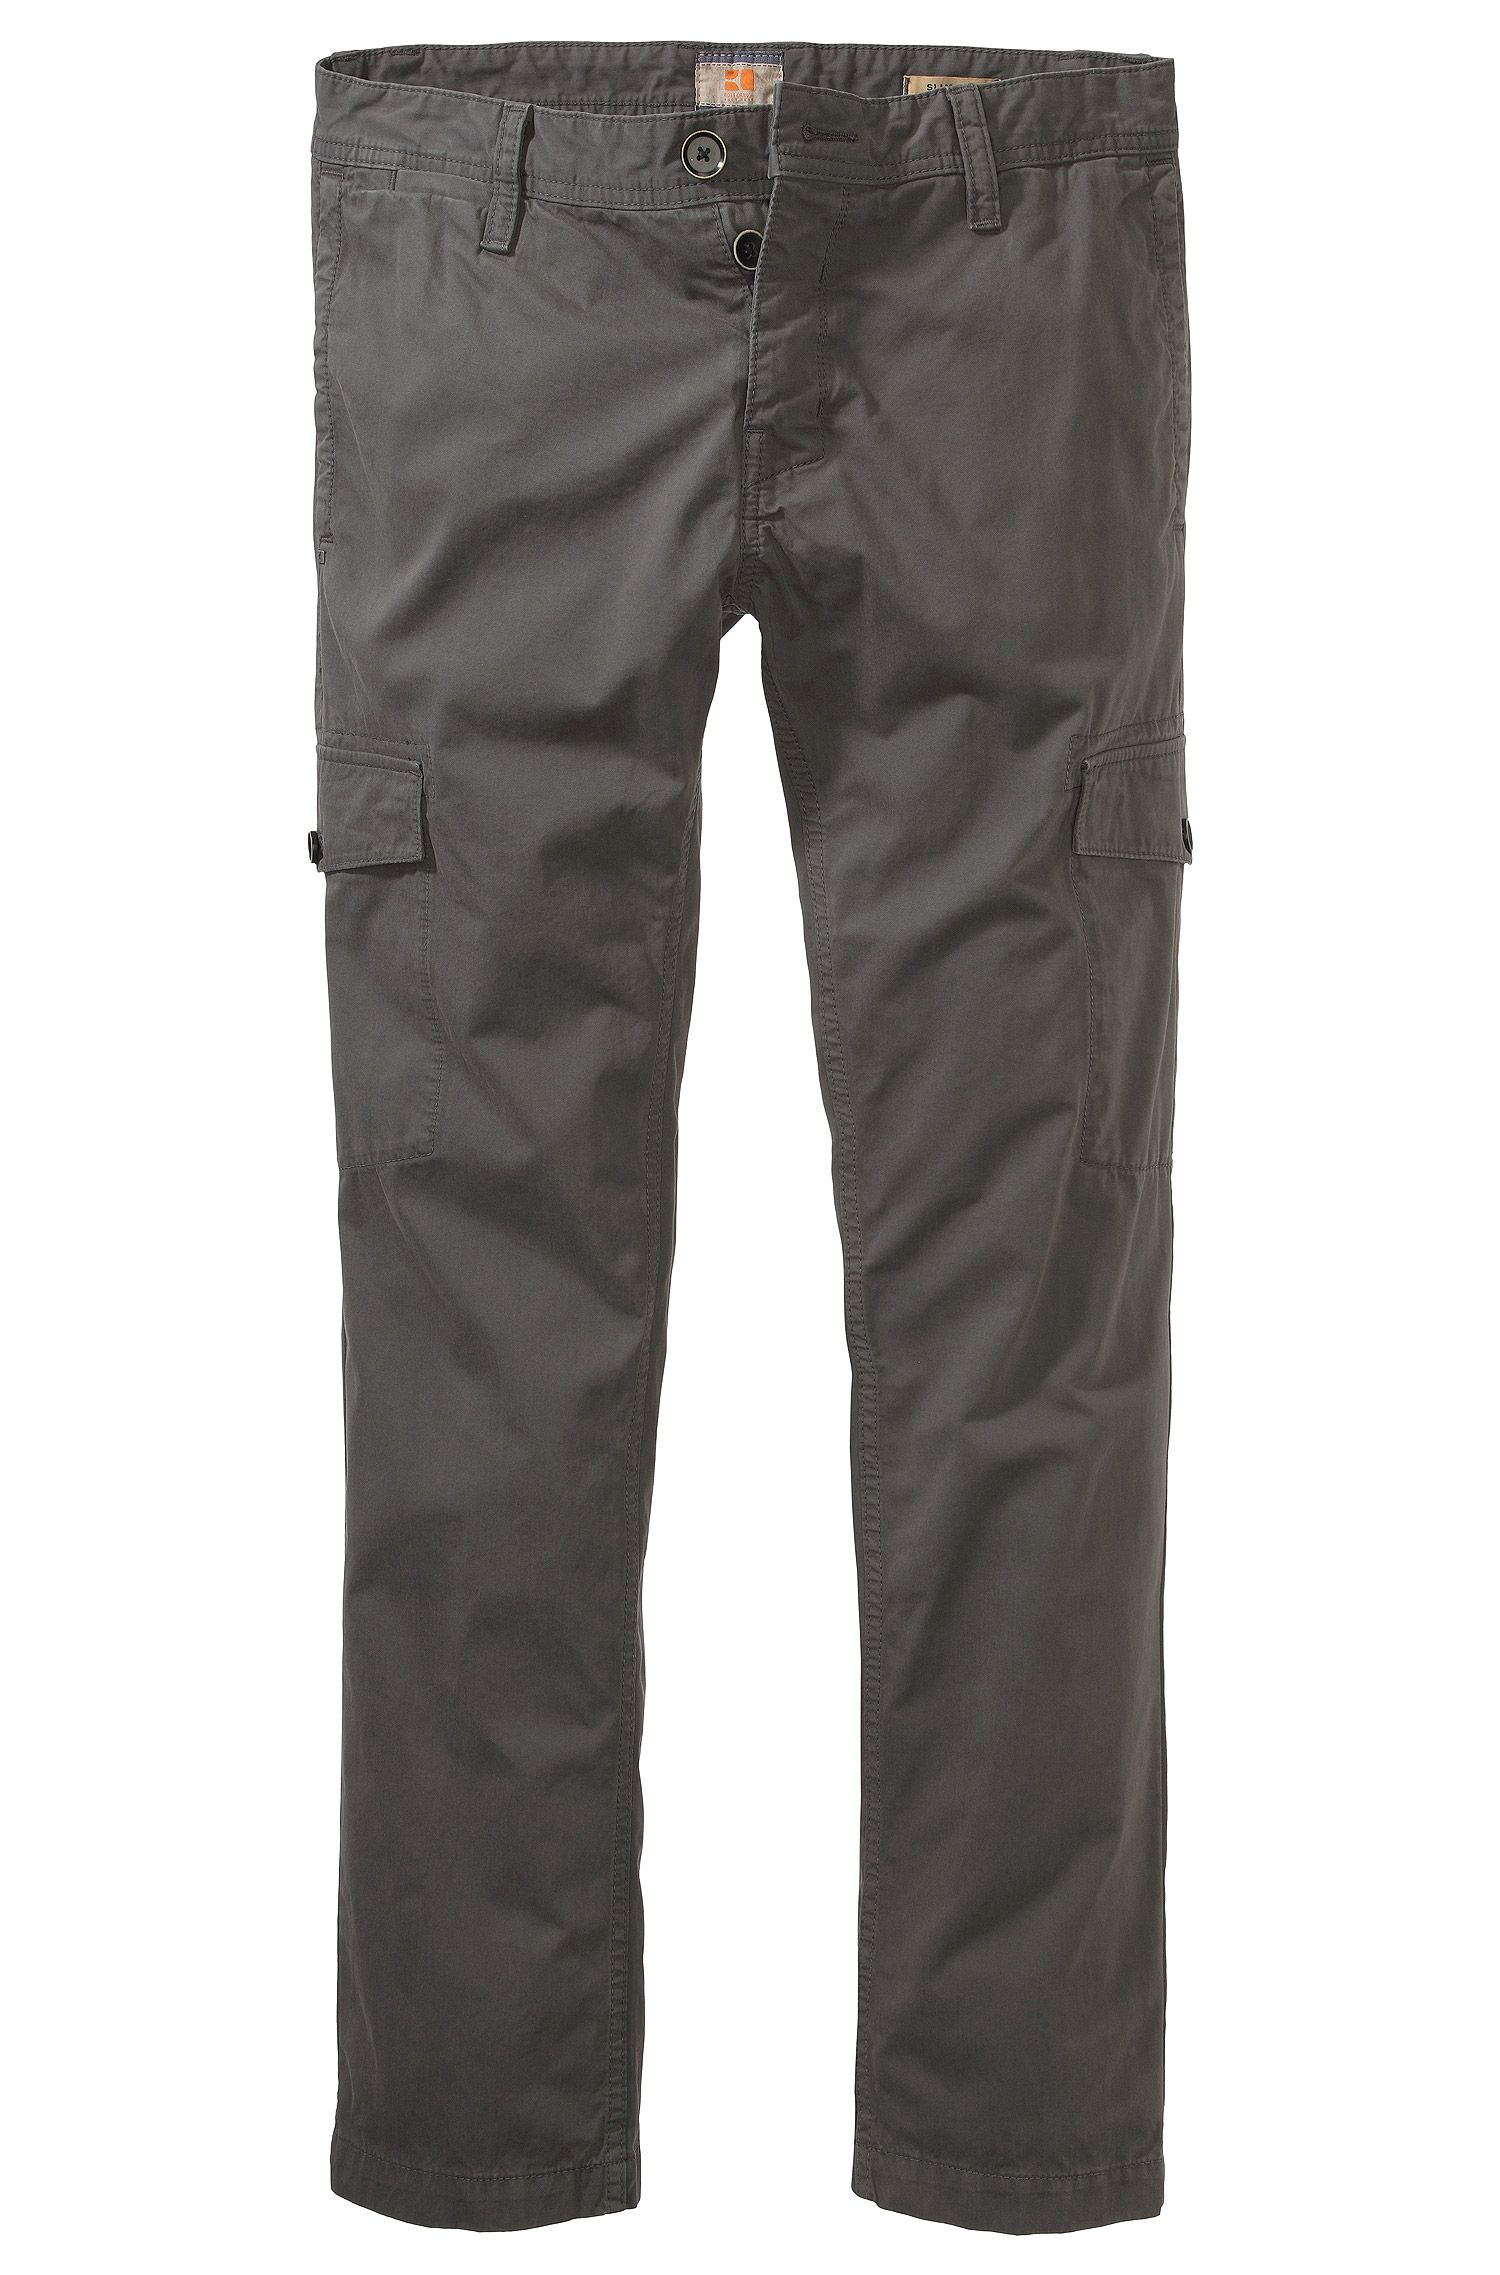 Pantalon cargo Slim Fit, Spinok-D